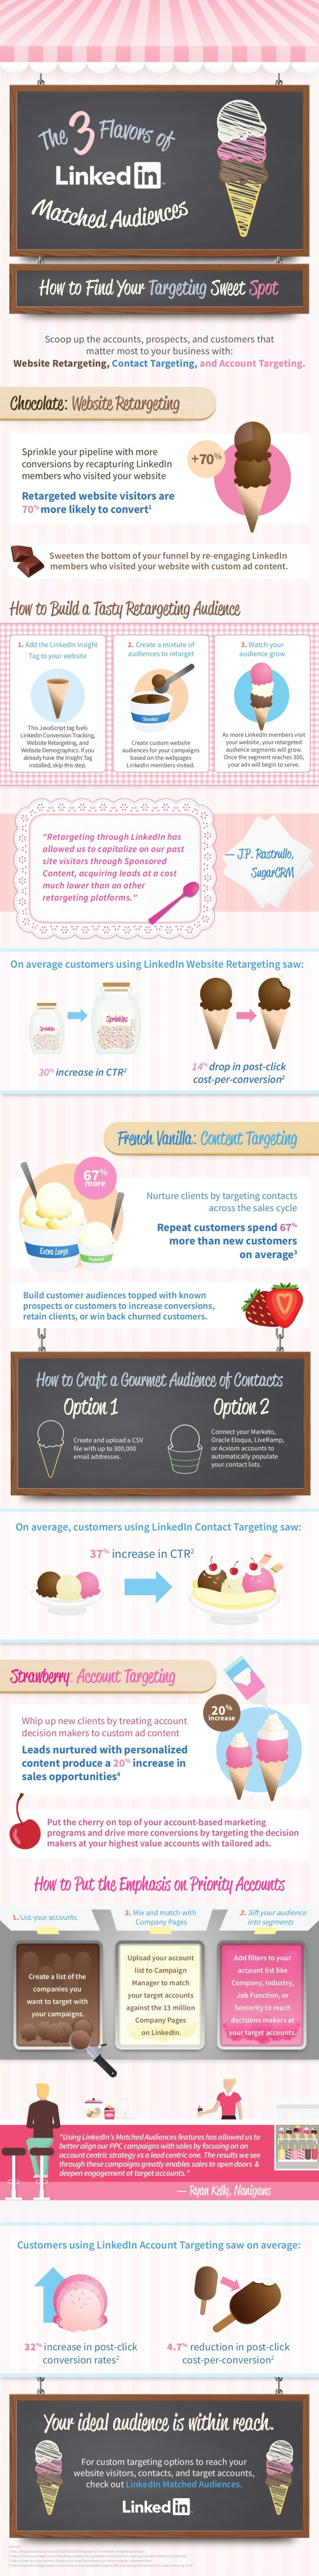 the-3-flavors-of-linkedin-matched-audiences-infographic